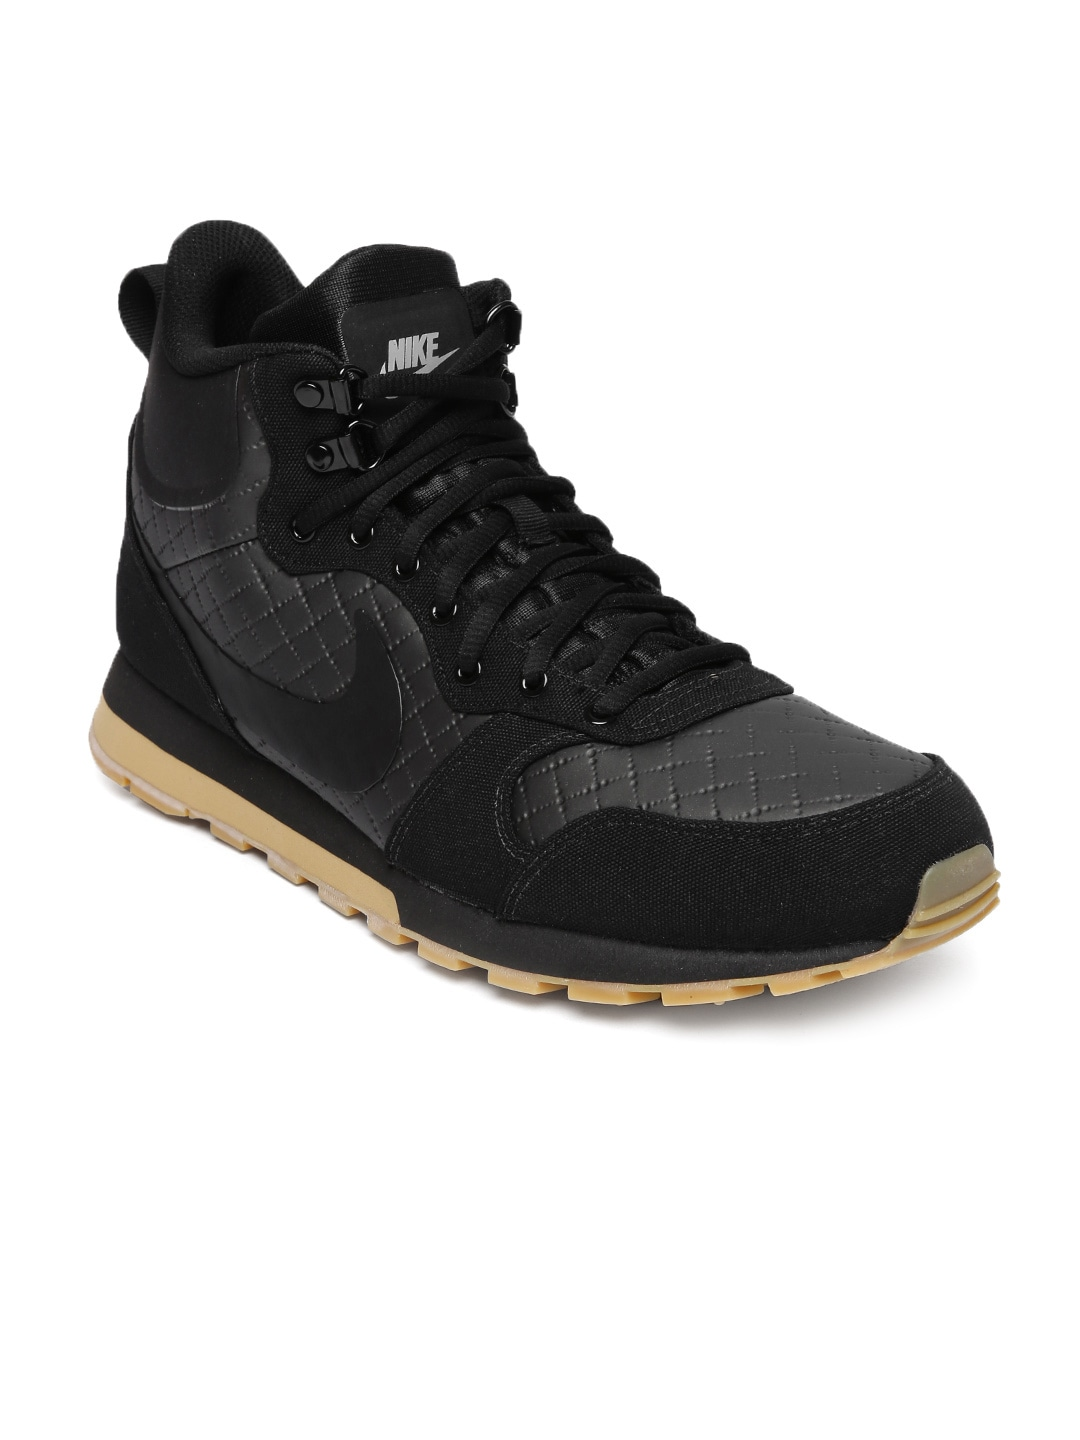 new style 4dd8c 3c6cd wearing nike sb mid batman shoes for sale